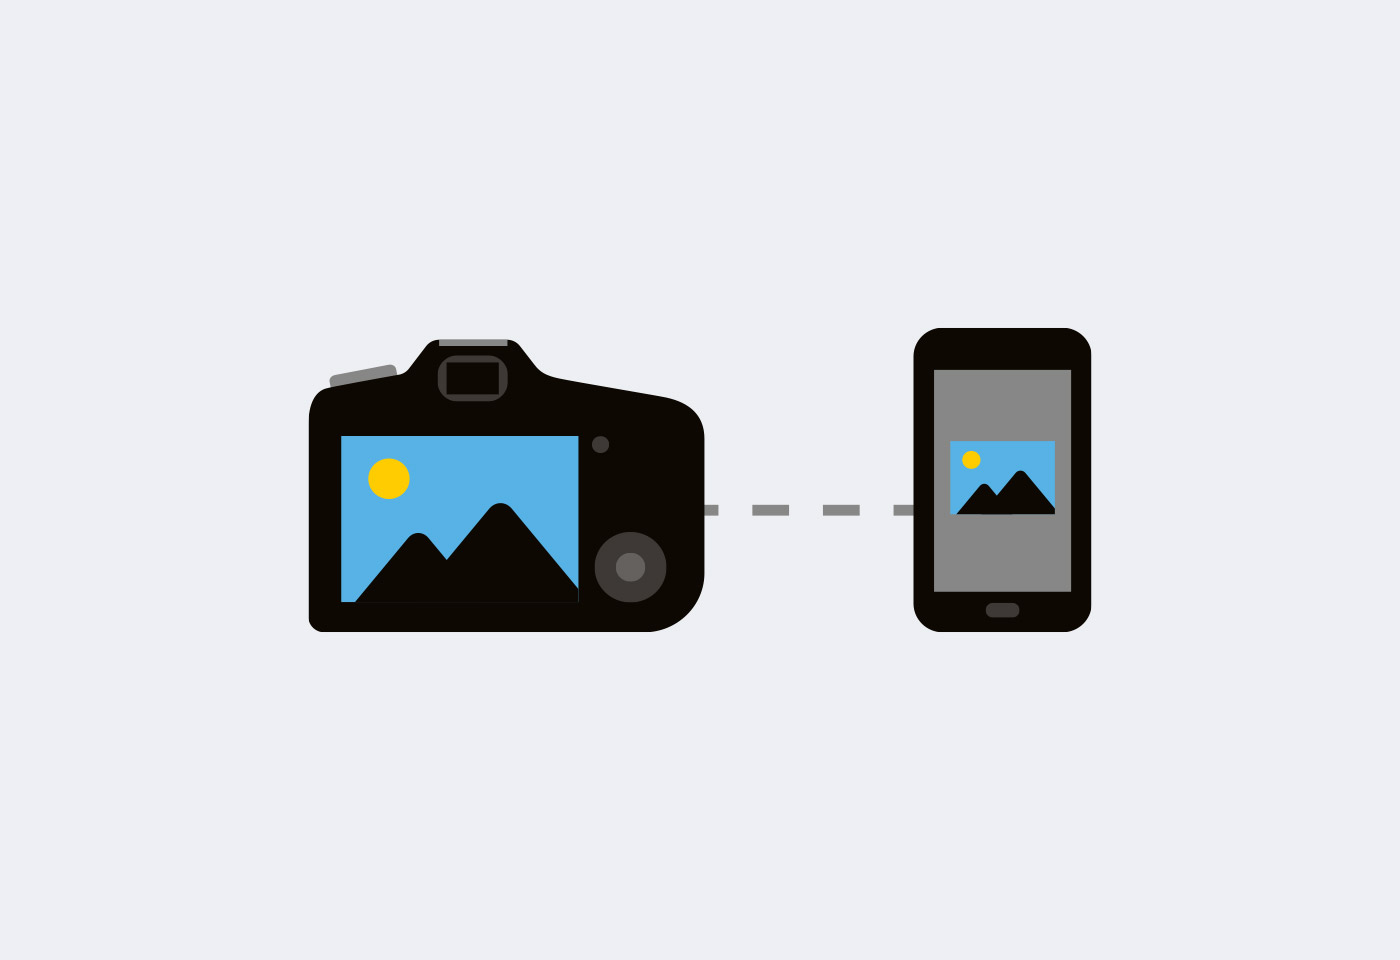 icon of camera connected to smart phone